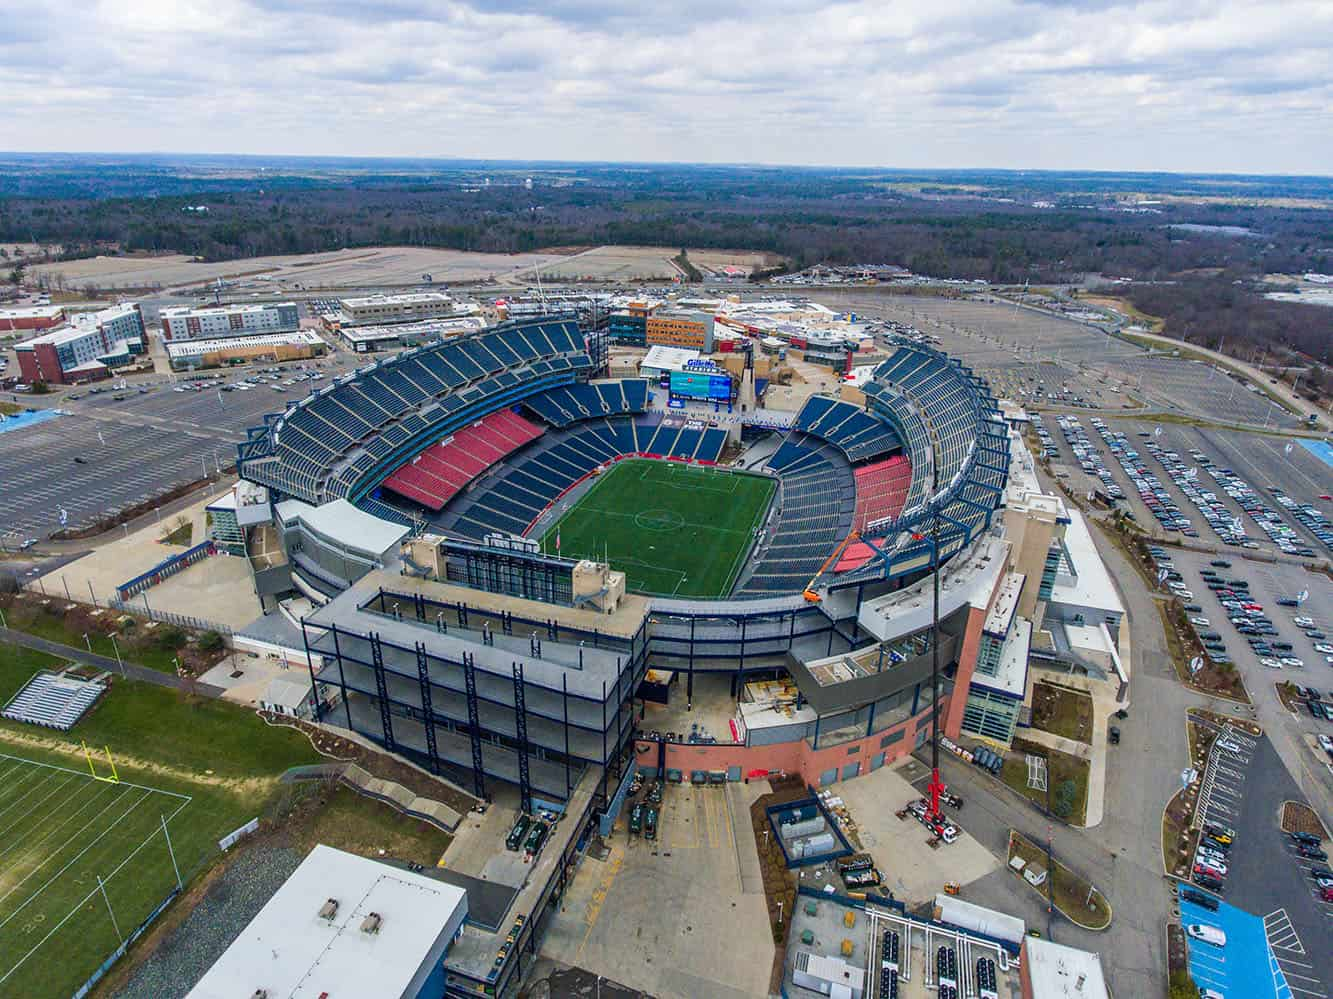 aerial drone photo of Gillette football stadium in Foxborough, MA